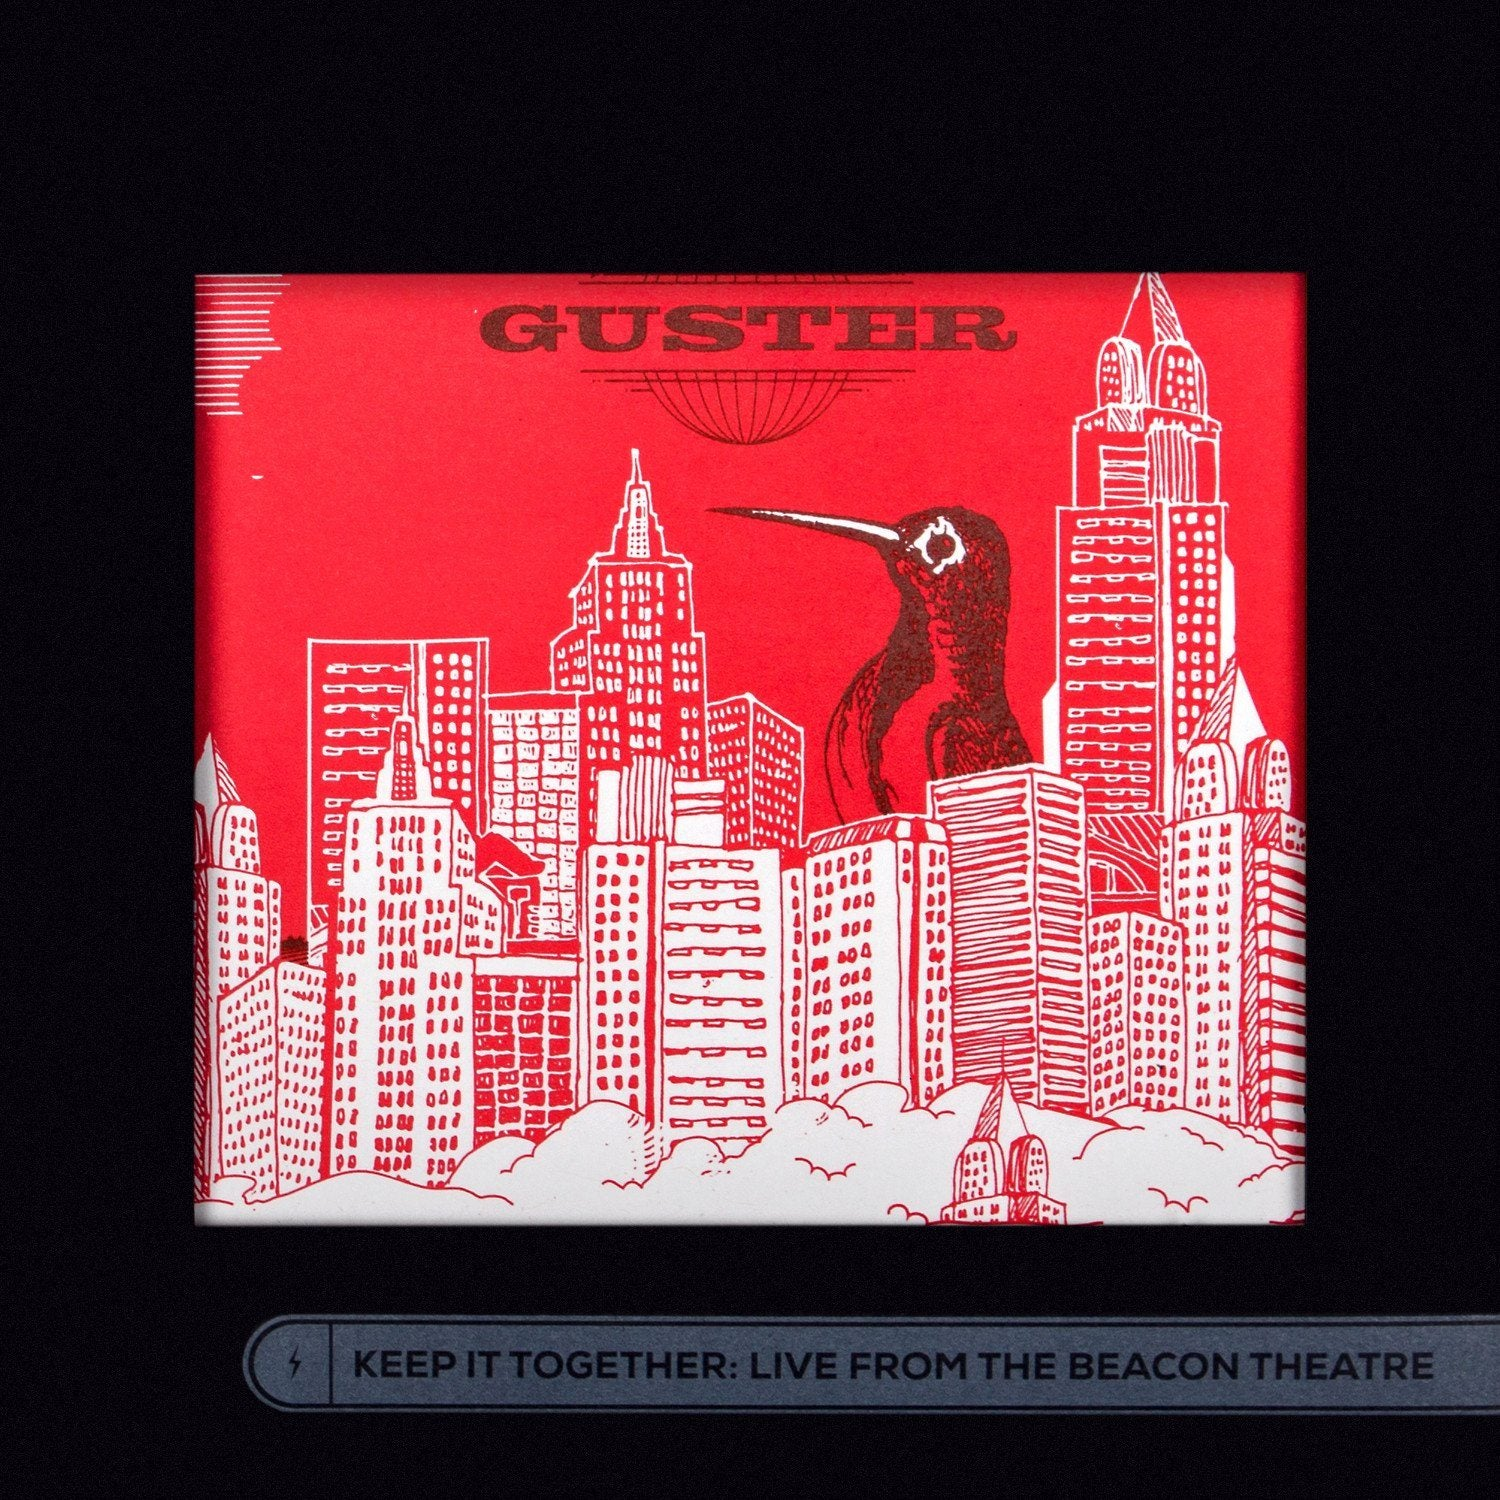 Guster 'Keep It Together: Live From The Beacon Theatre' MP3 / CD